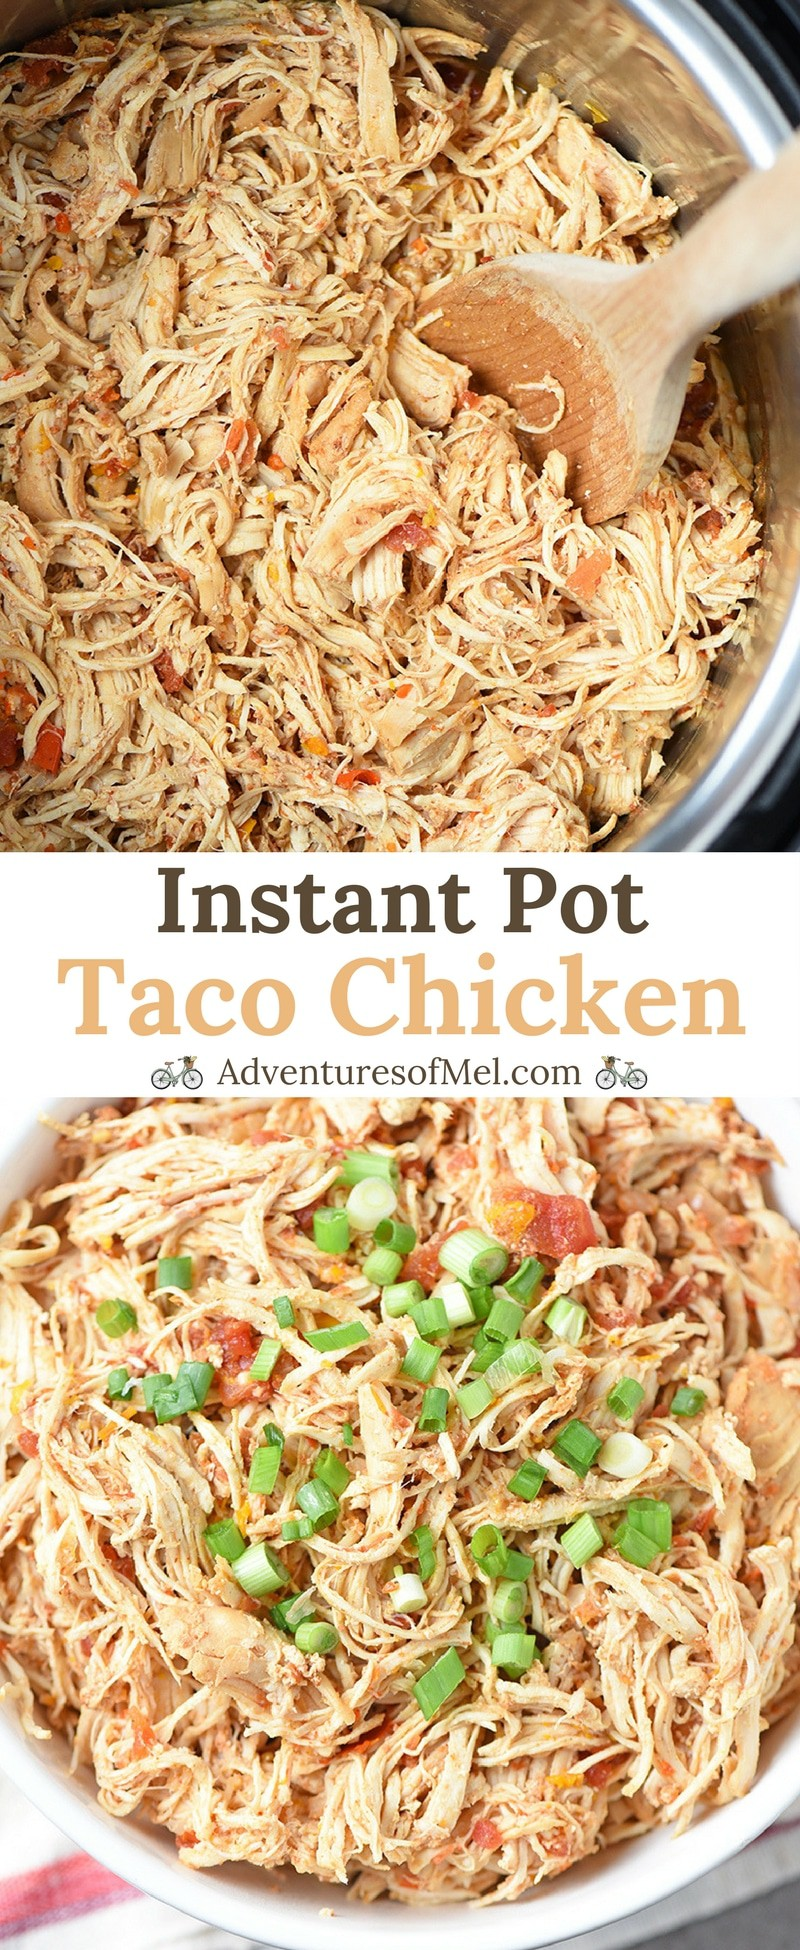 Instant Pot Taco Chicken Recipe